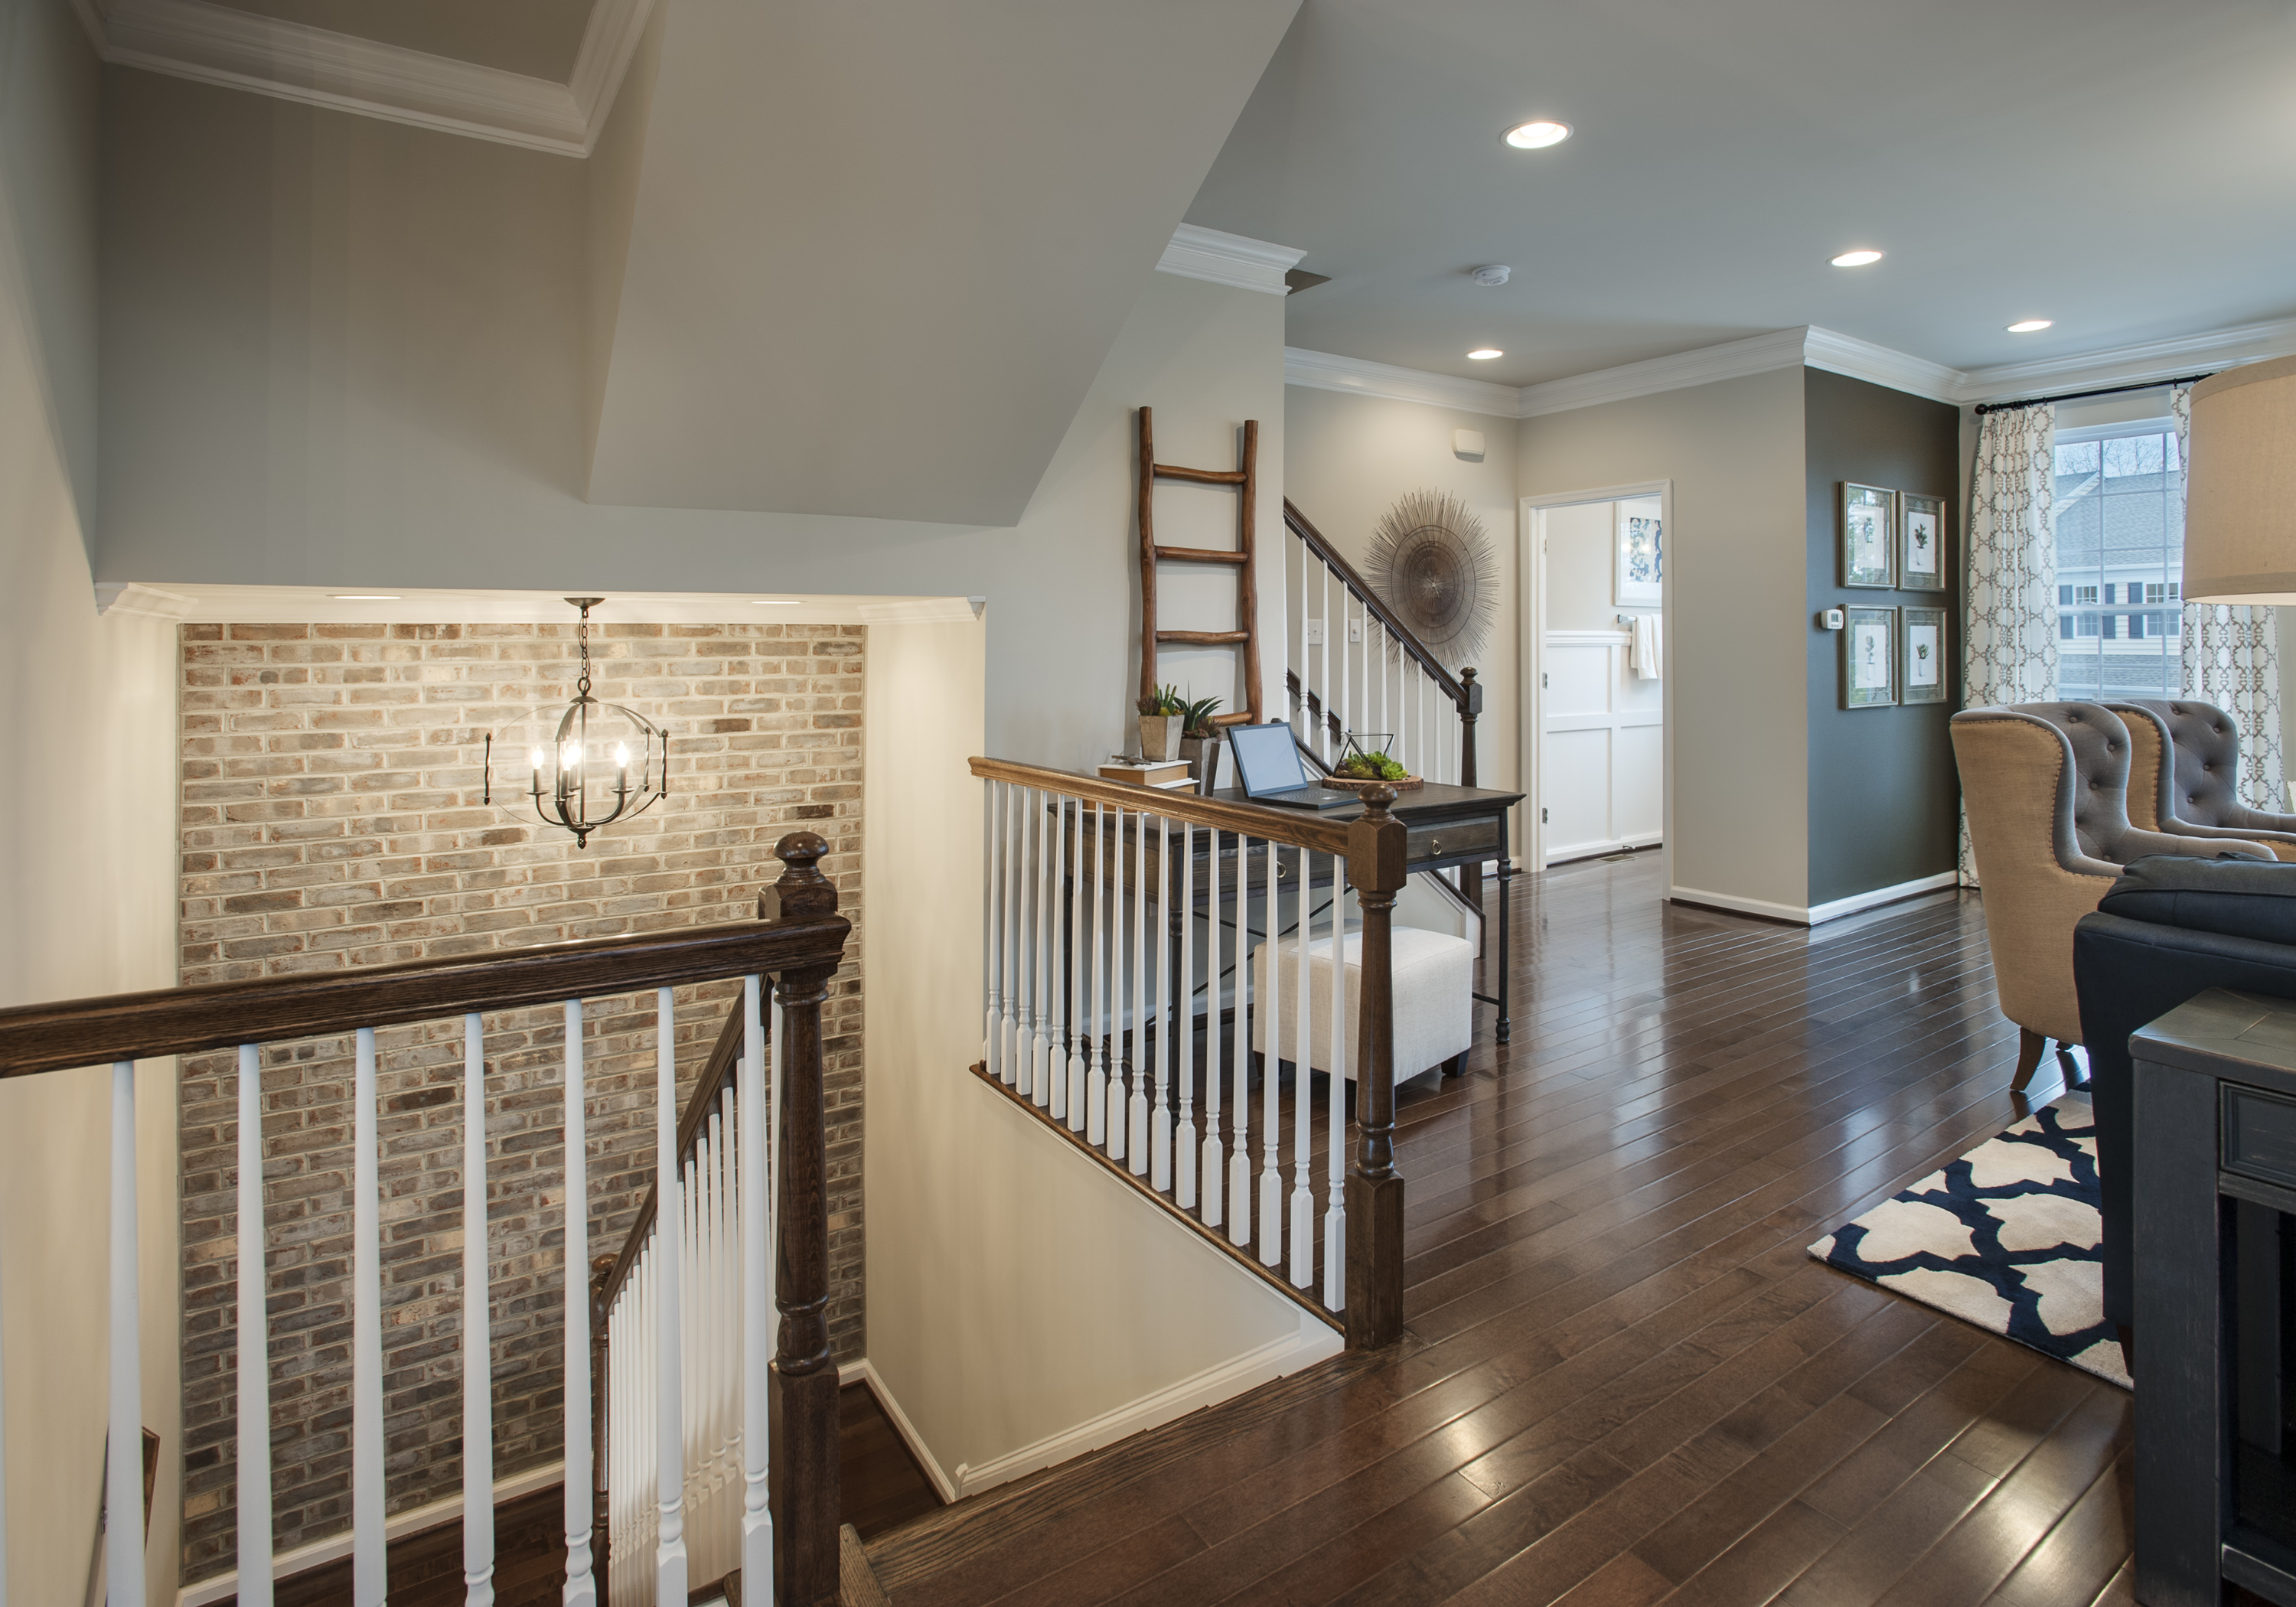 BUCKS COUNTY PA - TOWNHOME GREAT ROOM & STAIRWELL